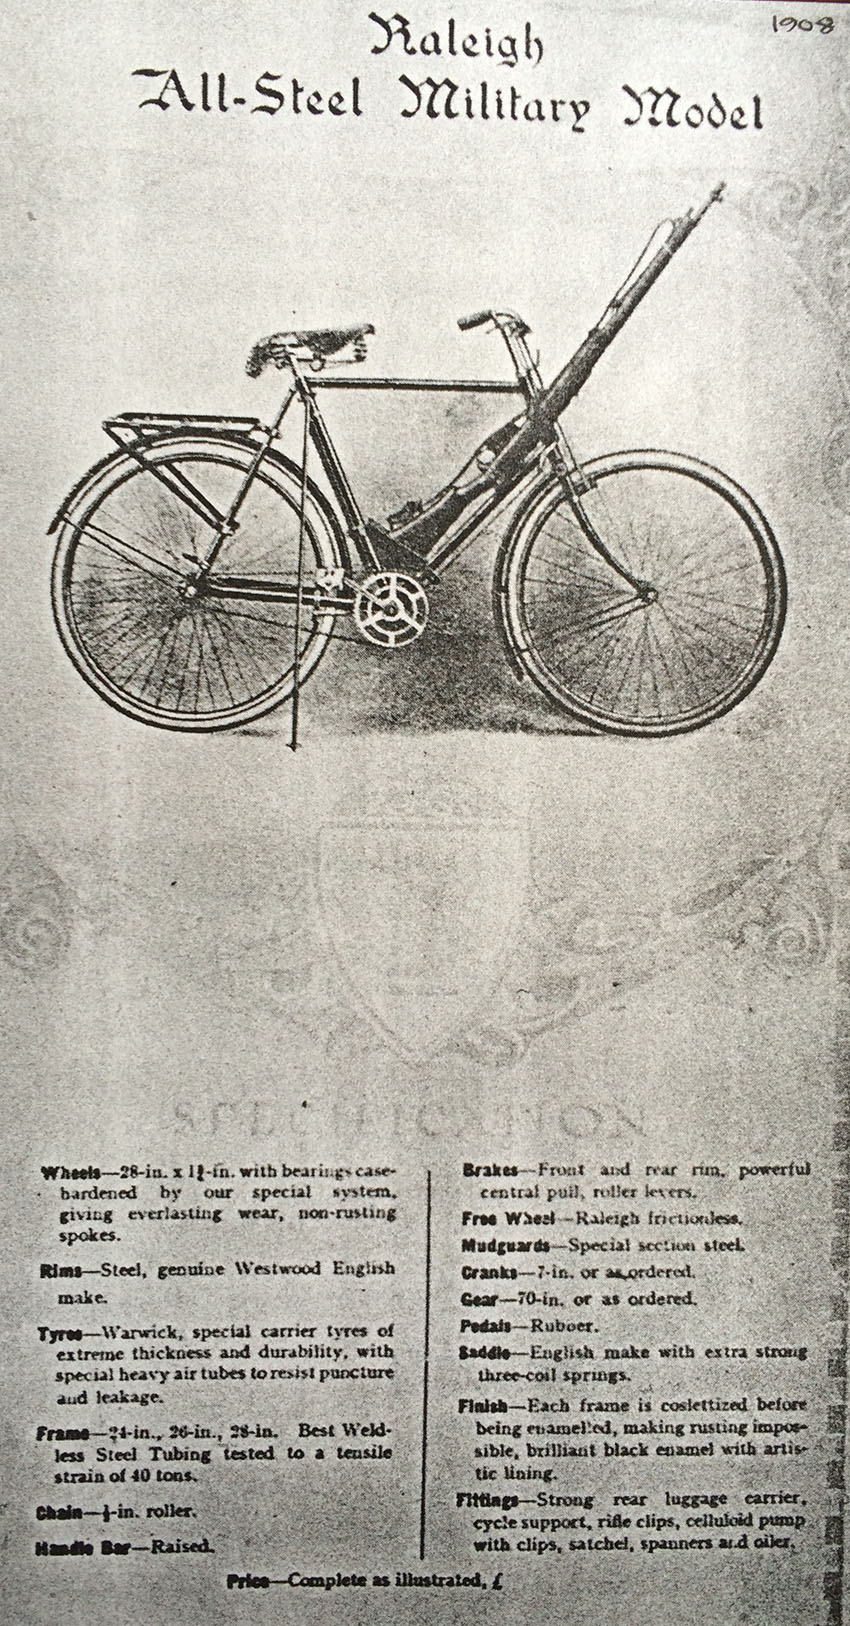 1908 RALEIGH ALL-STEEL MILITARY MODEL copy